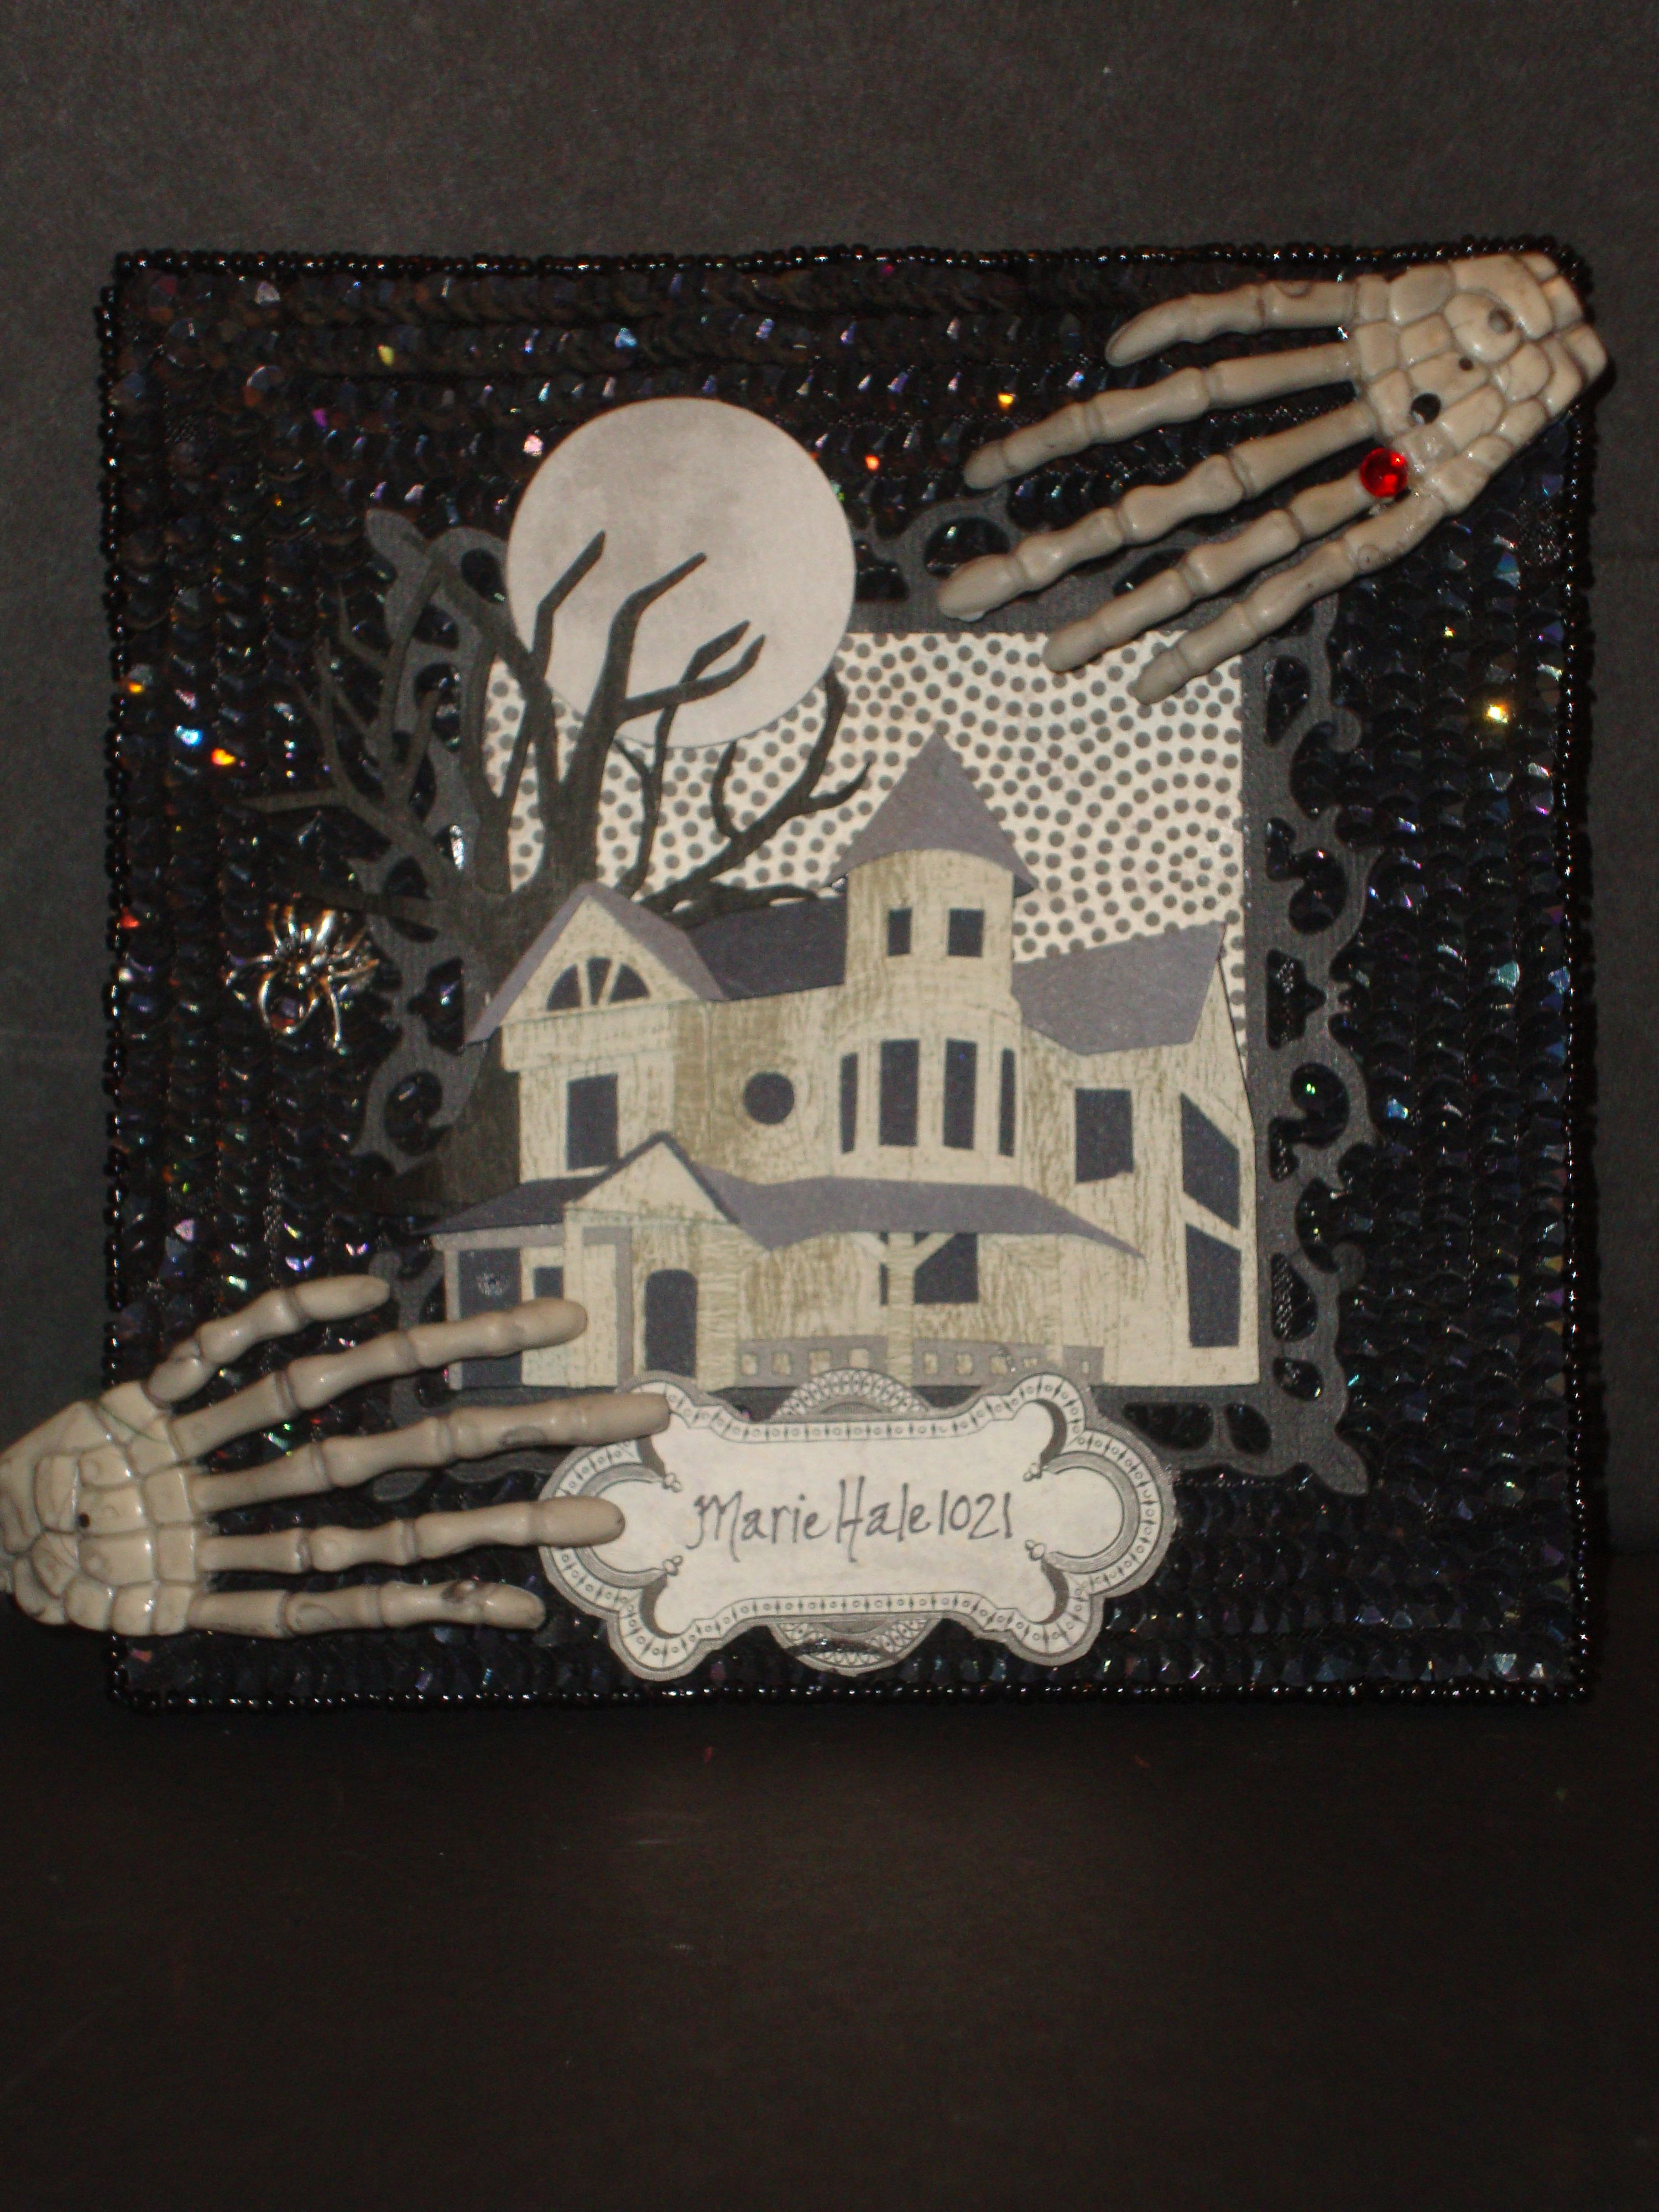 How to make scrapbook youtube - My Halloween Altered Frame I Made For My Youtube Channel I Always See Frames